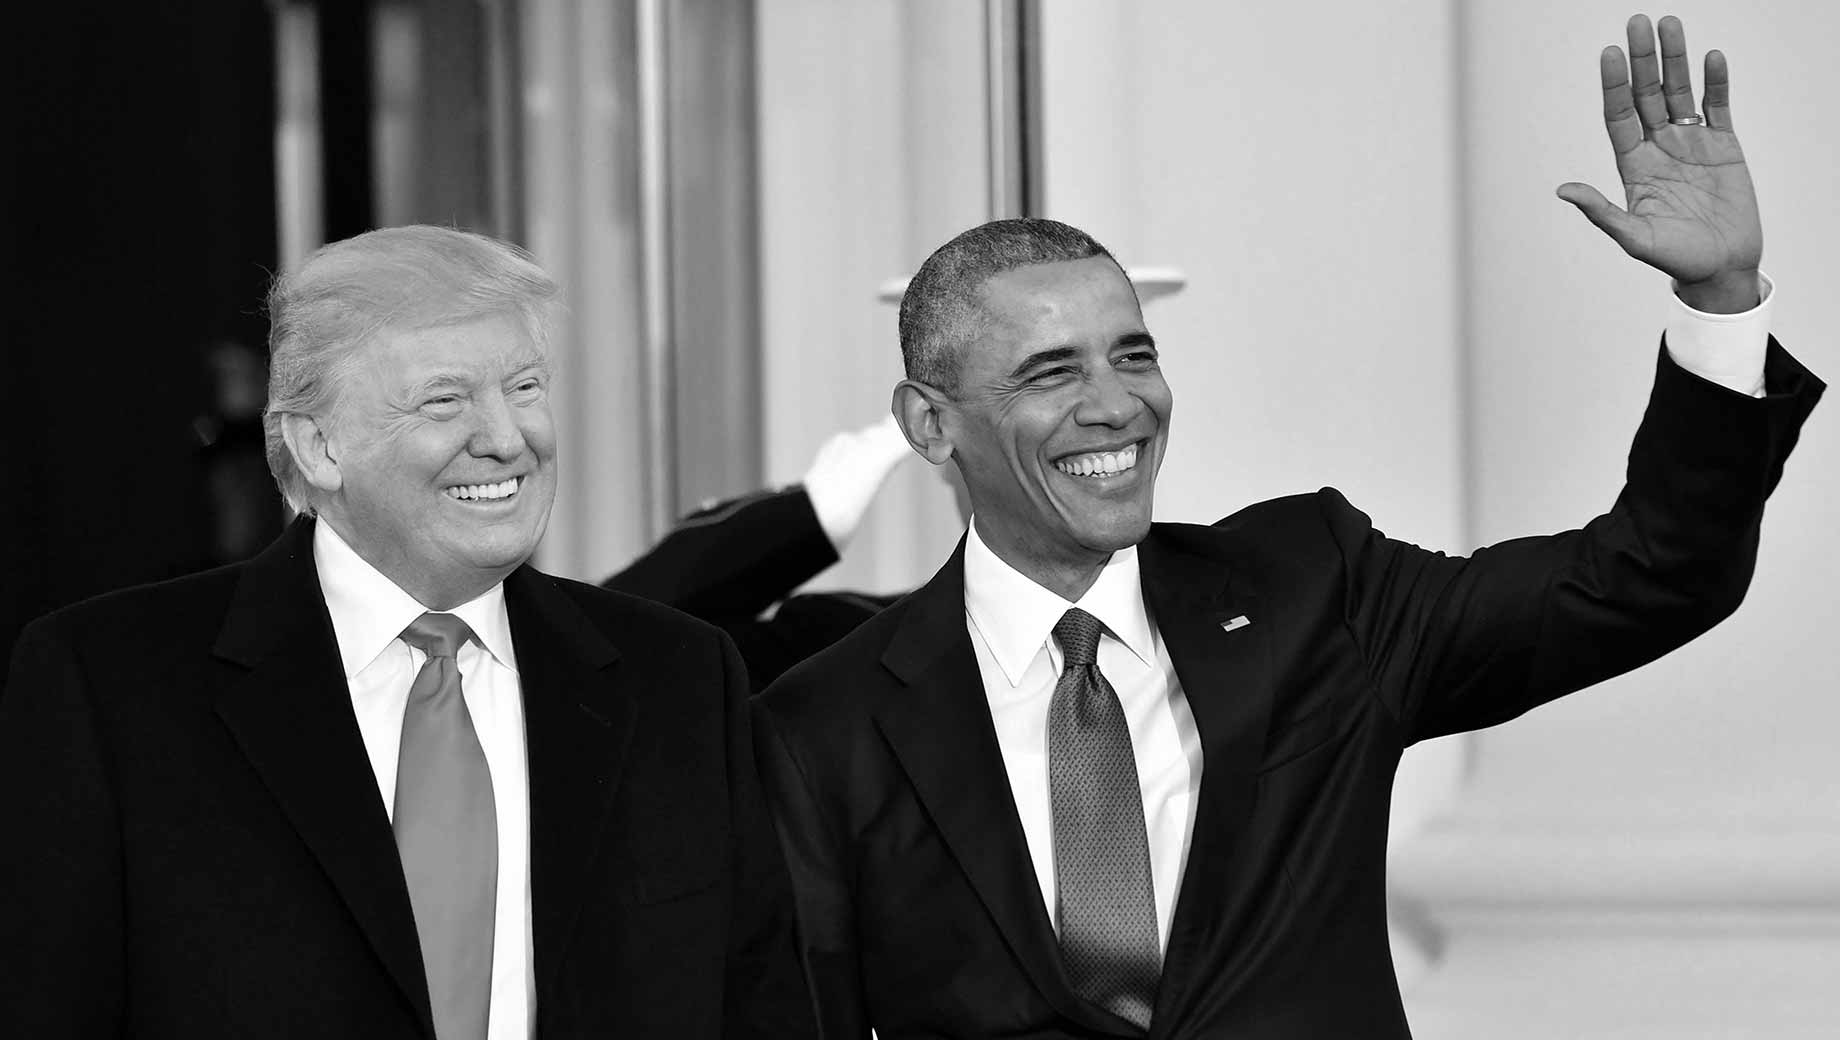 Obama, Trump Tie as Most Admired Man in 2019